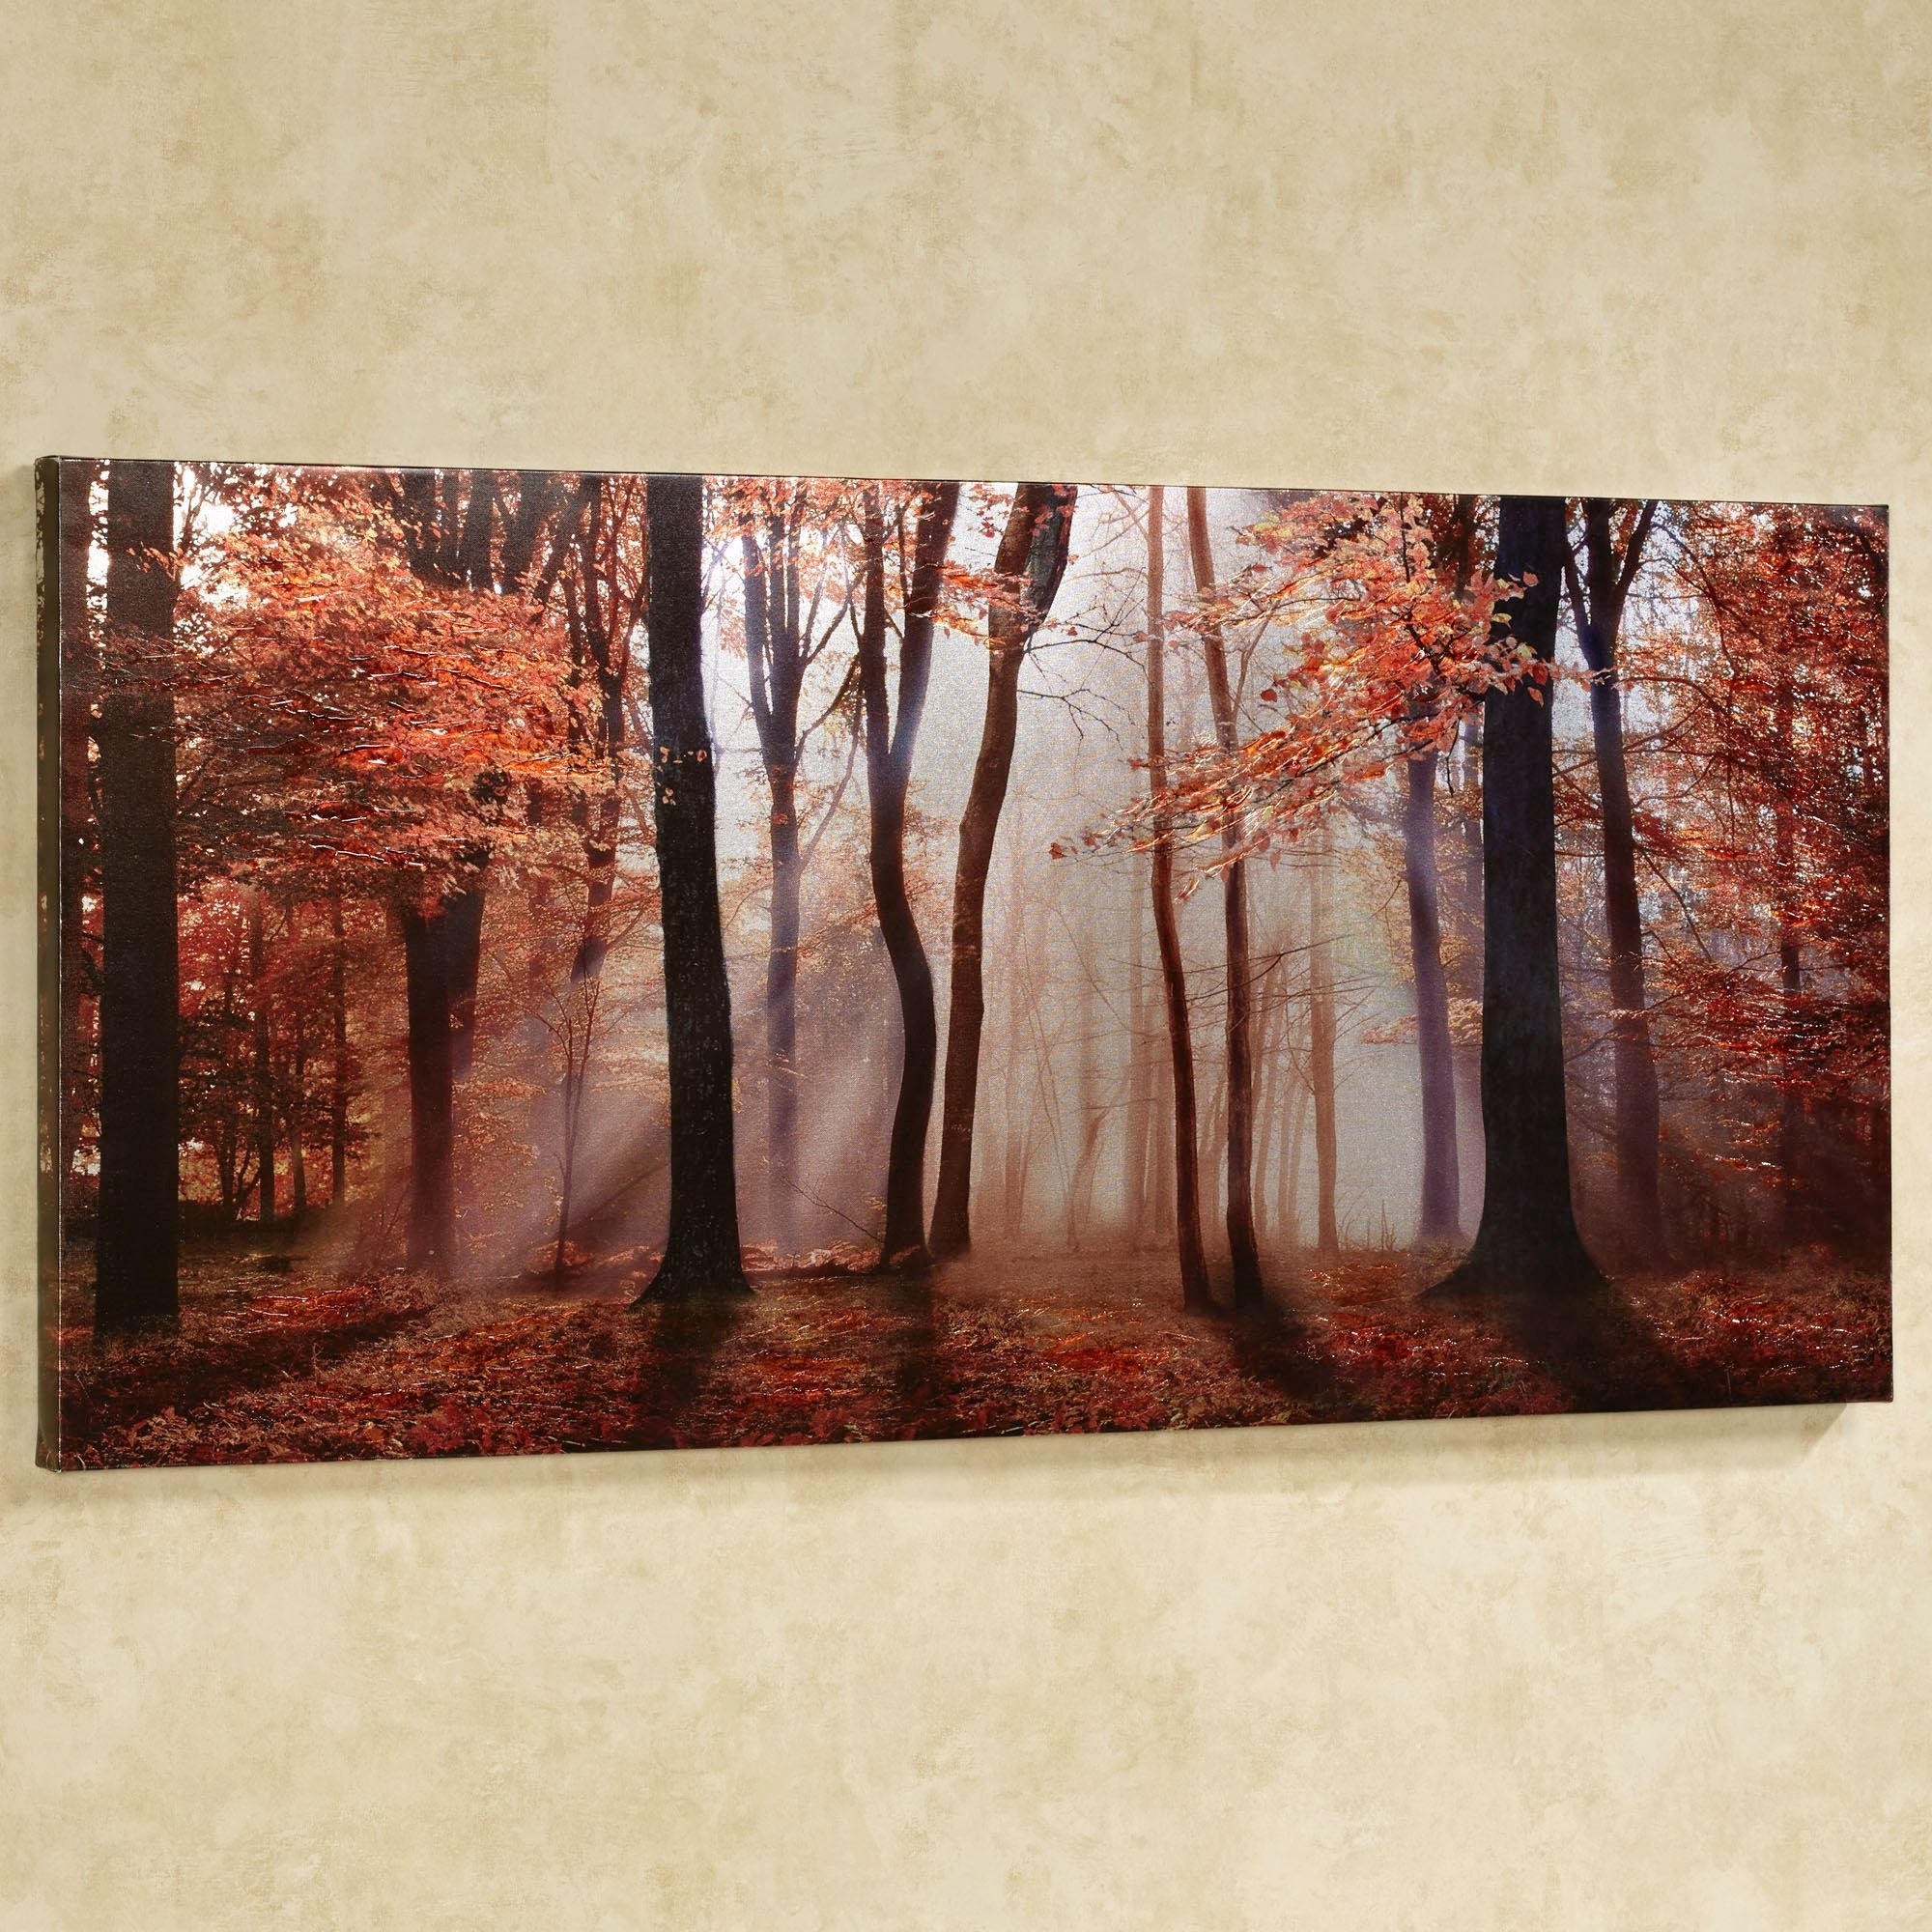 Wall Canvas Art With Regard To Famous Autumns Allure Giclee Canvas Wall Art (View 15 of 15)